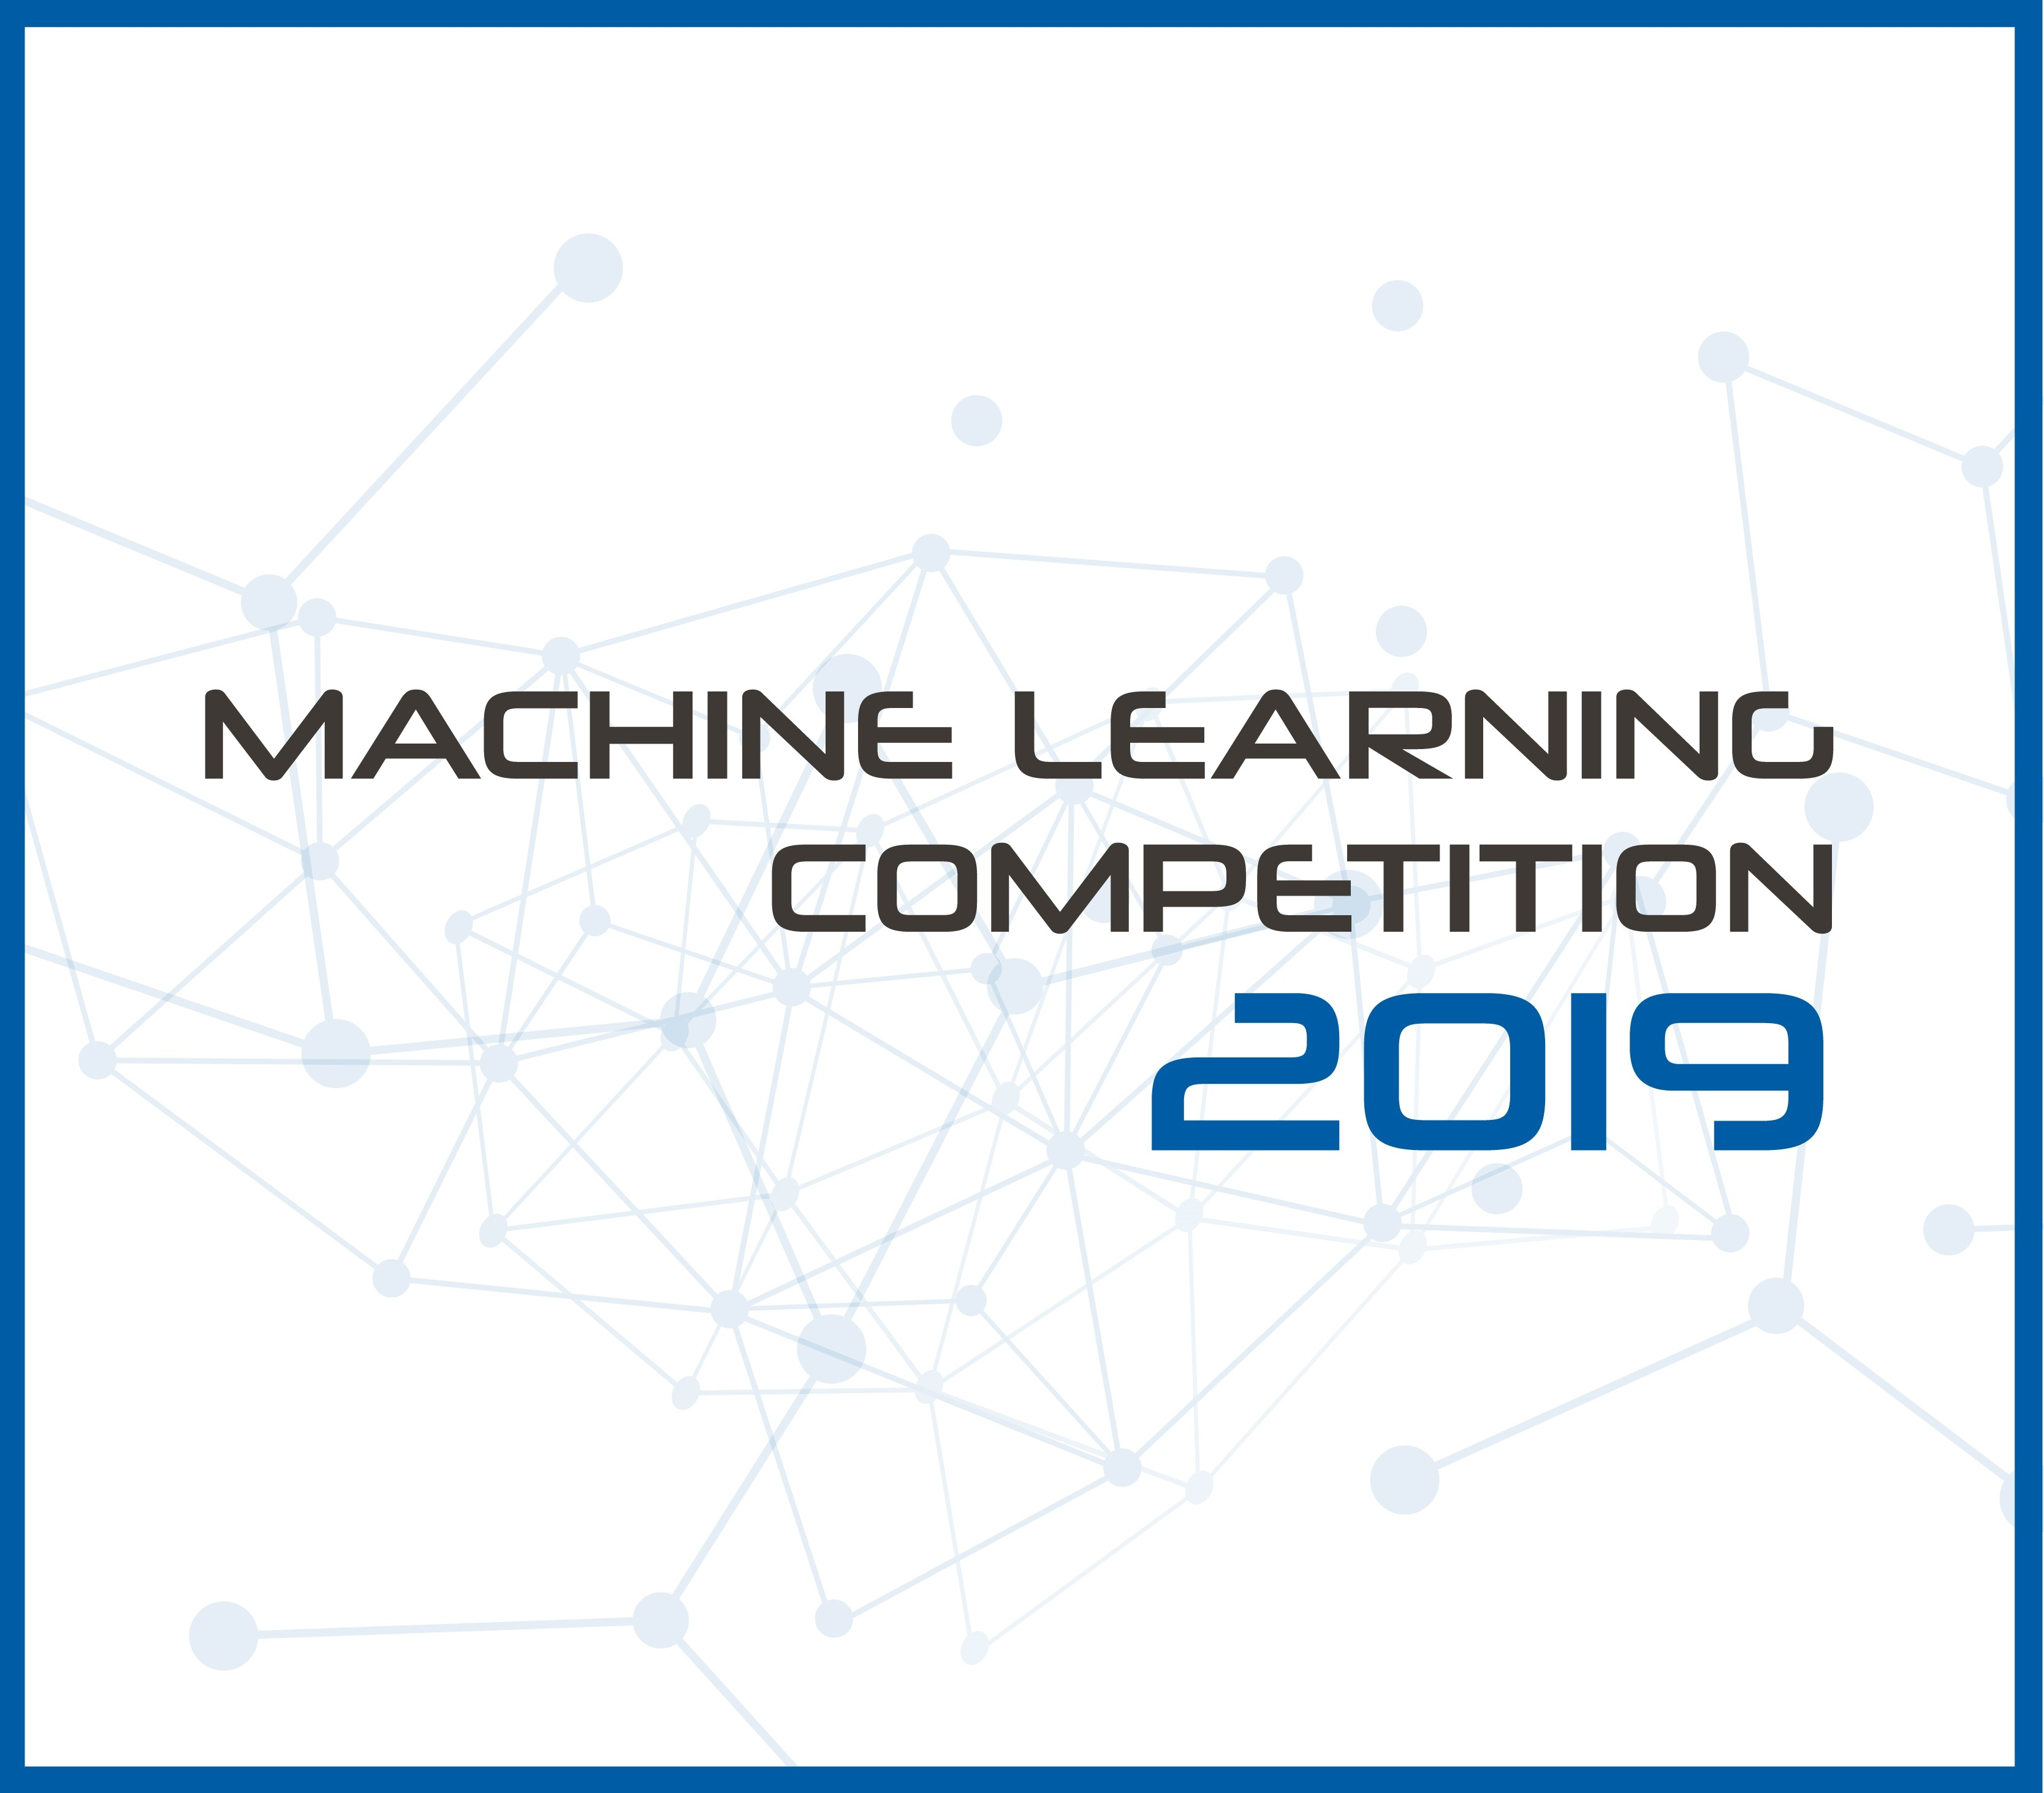 Machine Learning Competition